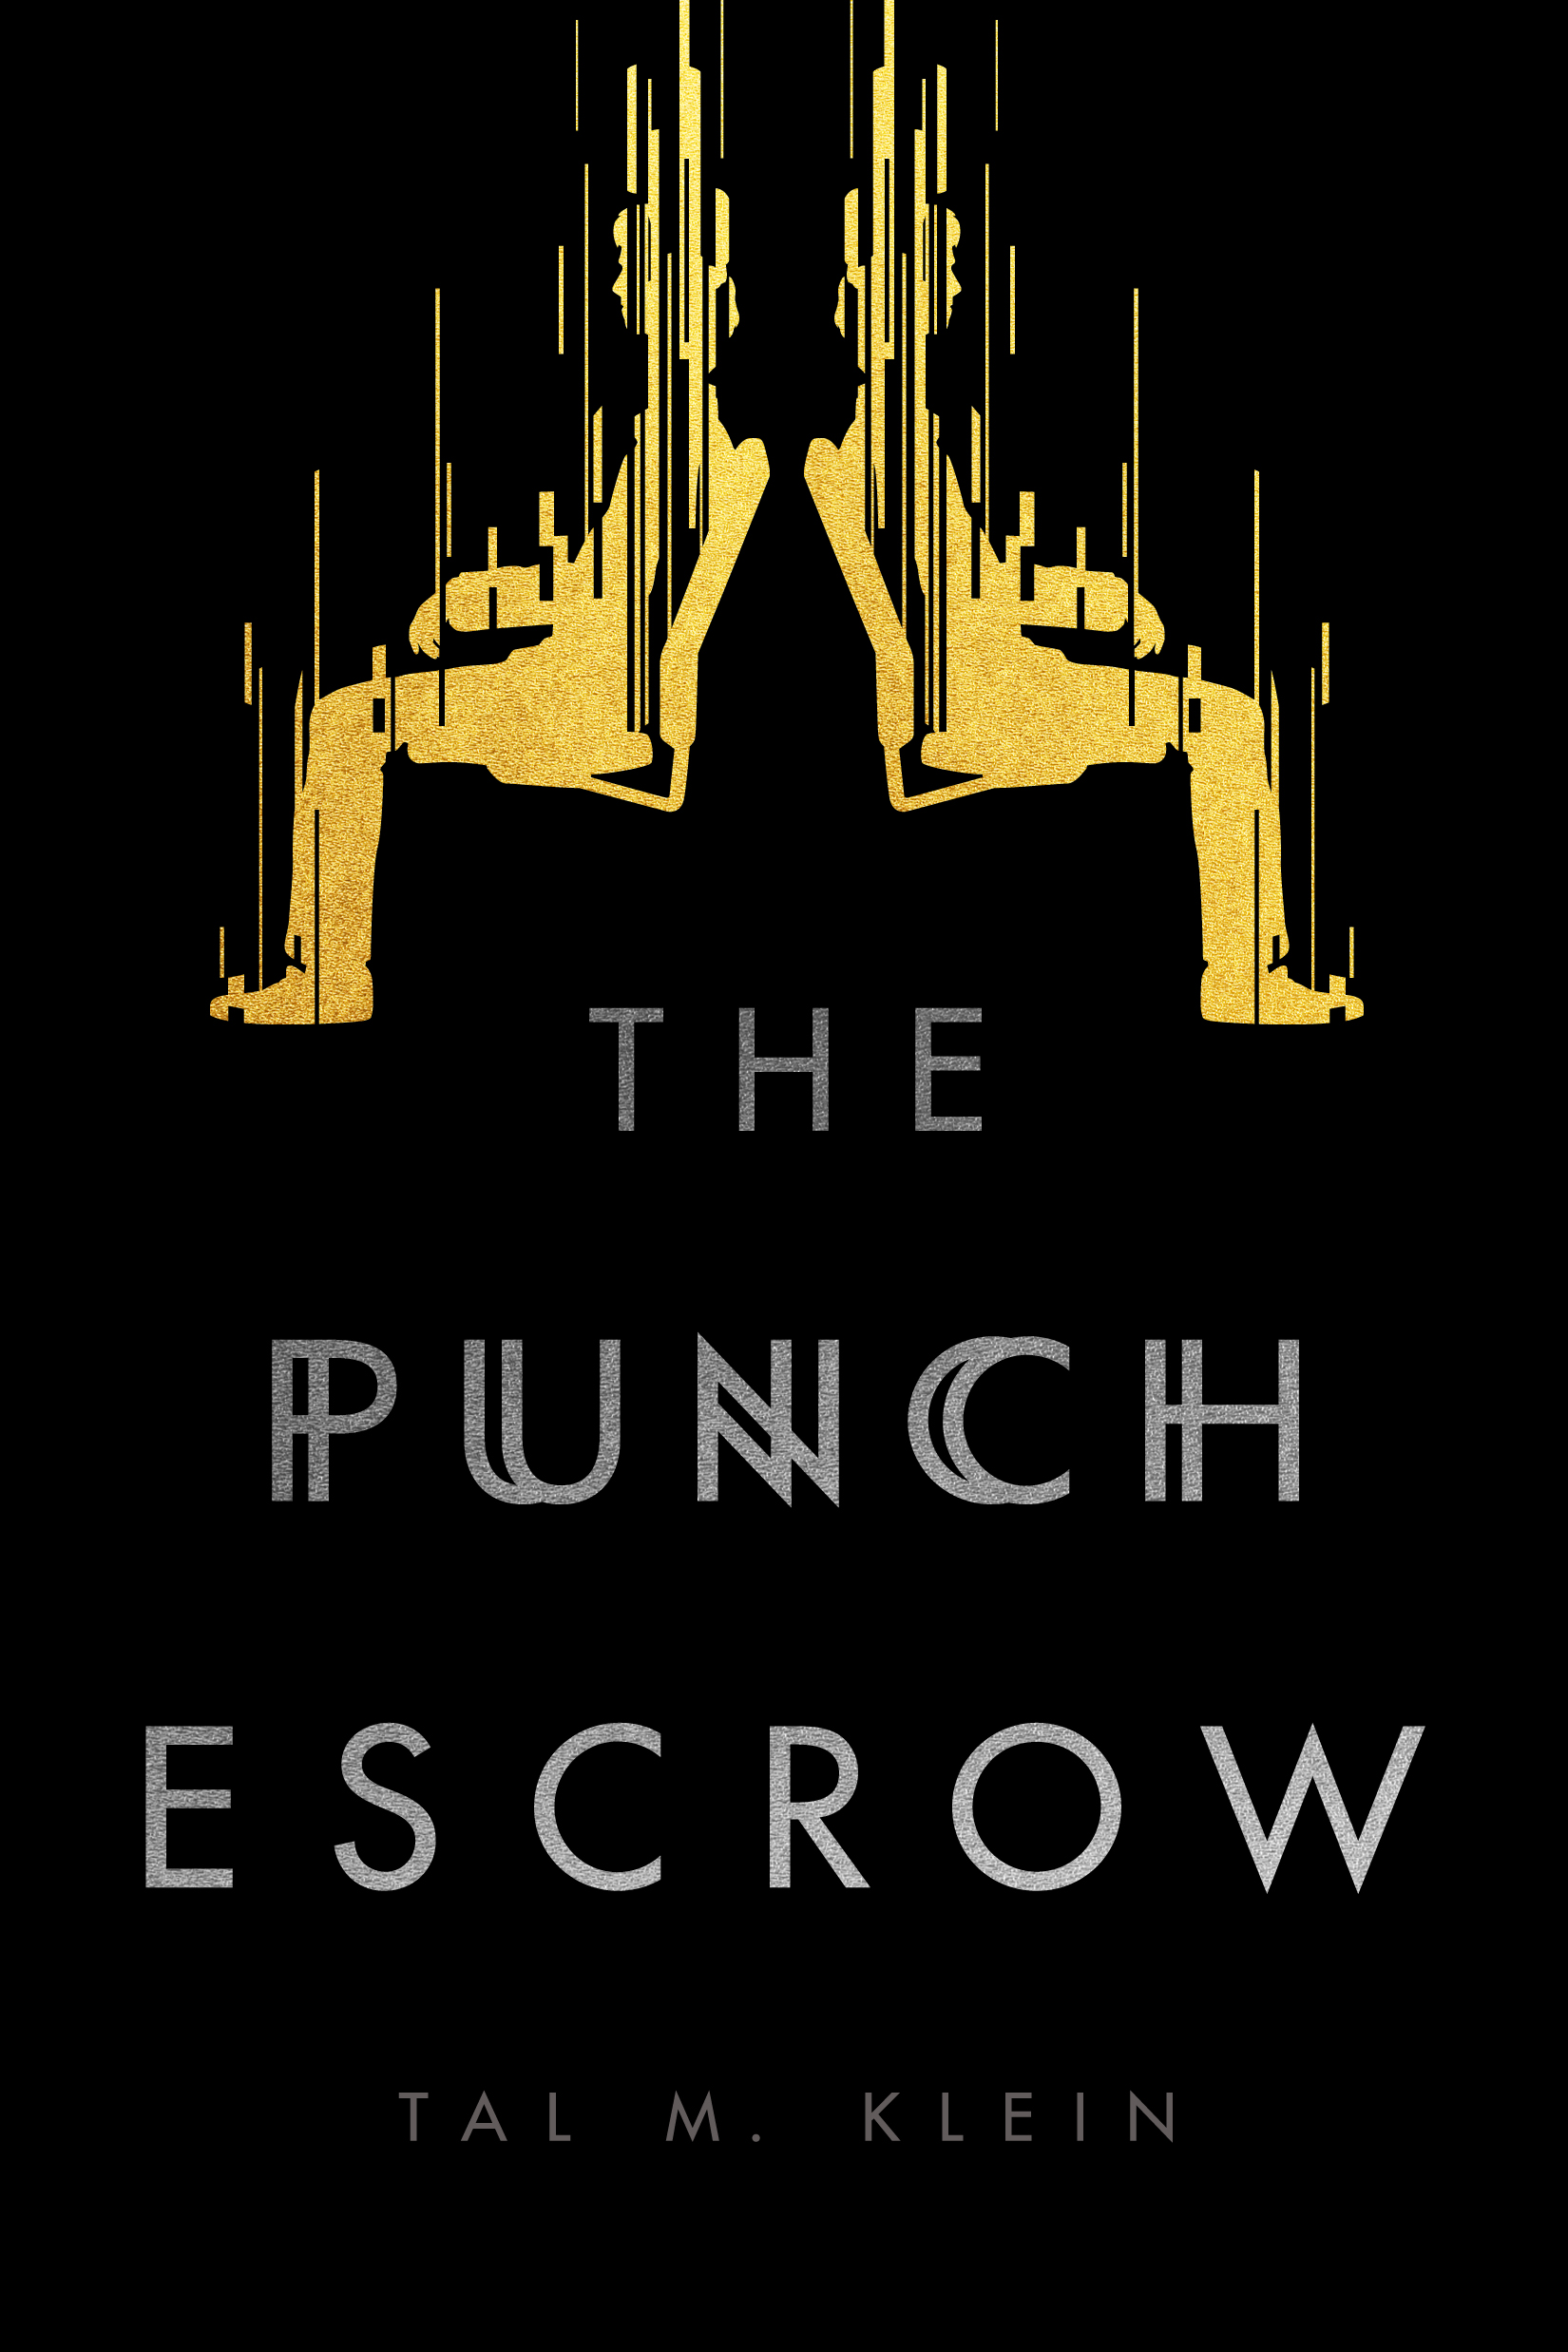 The Punch Escrow cover image